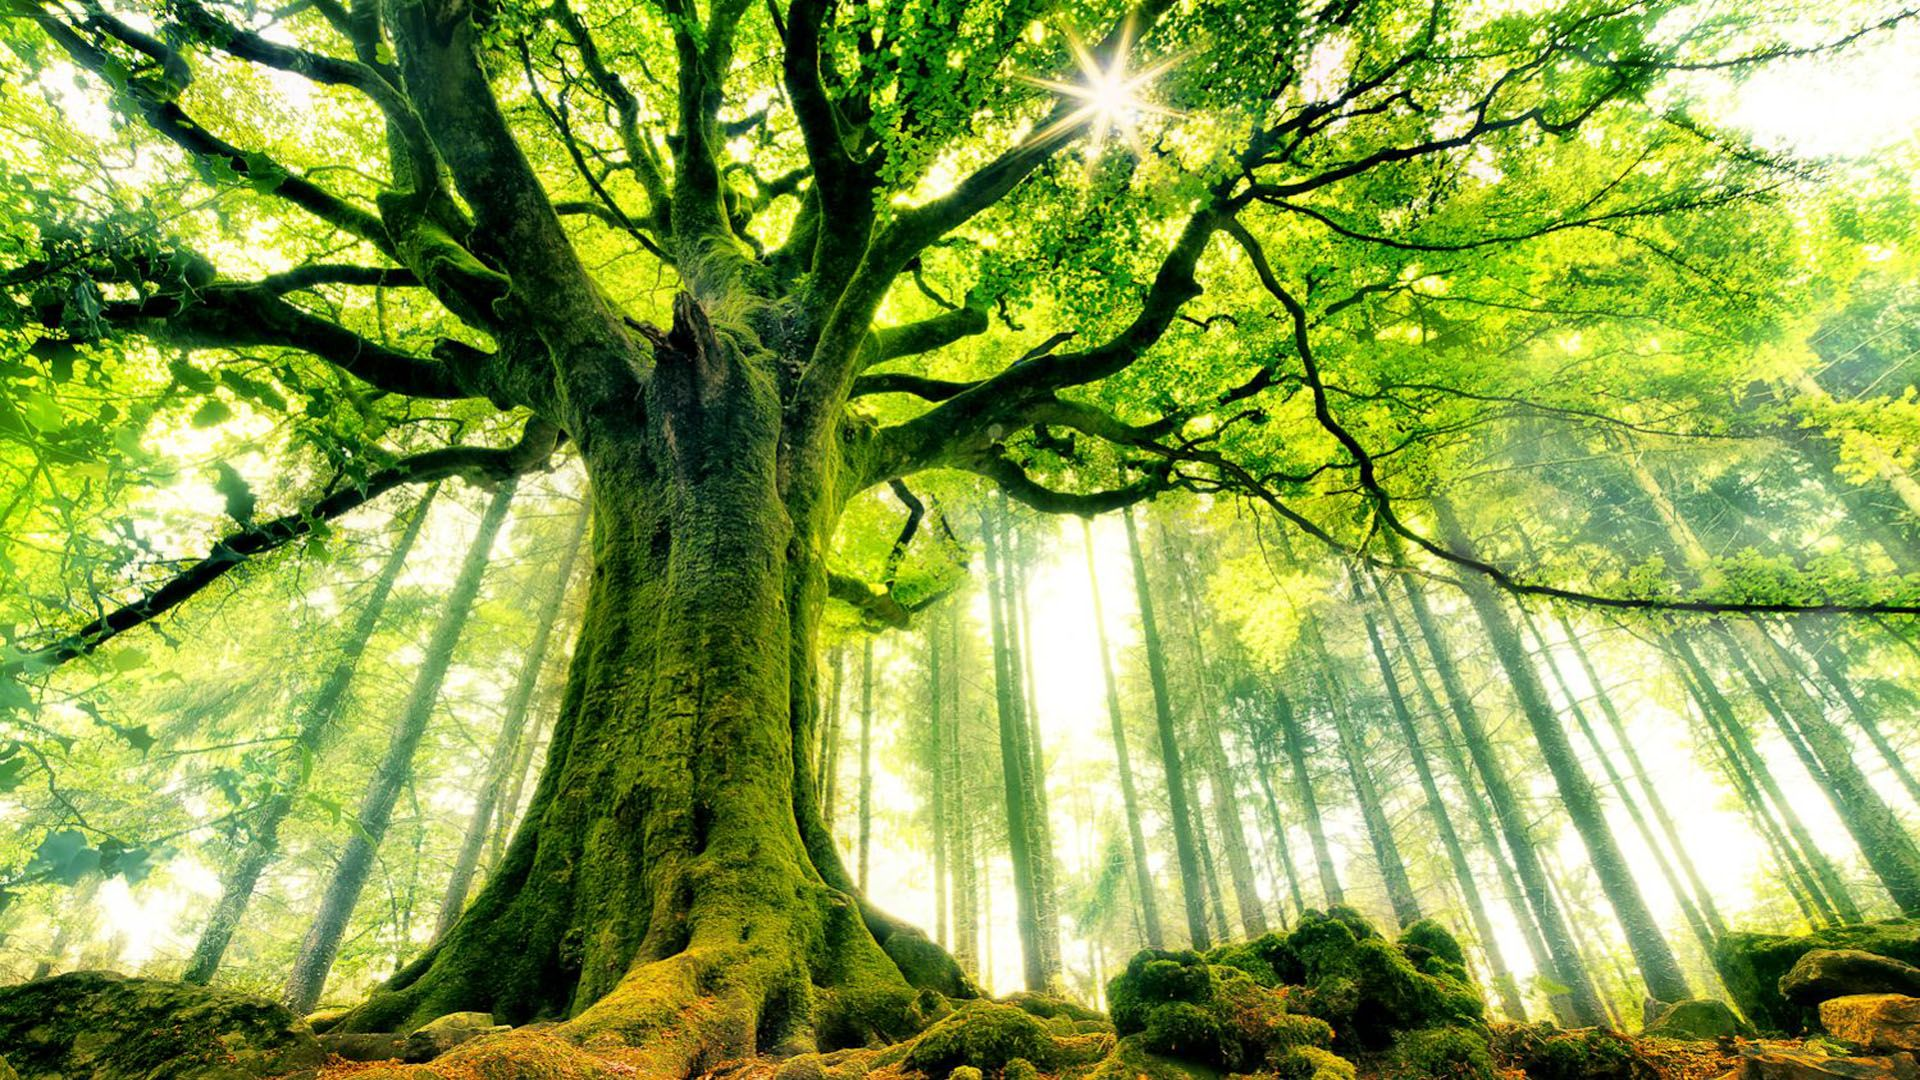 Ancient Tree Hd Wallpaper Cool Wallpapers Fotografii Prirody Nastennaya Rospis V Vide Derevev Naturalnyj